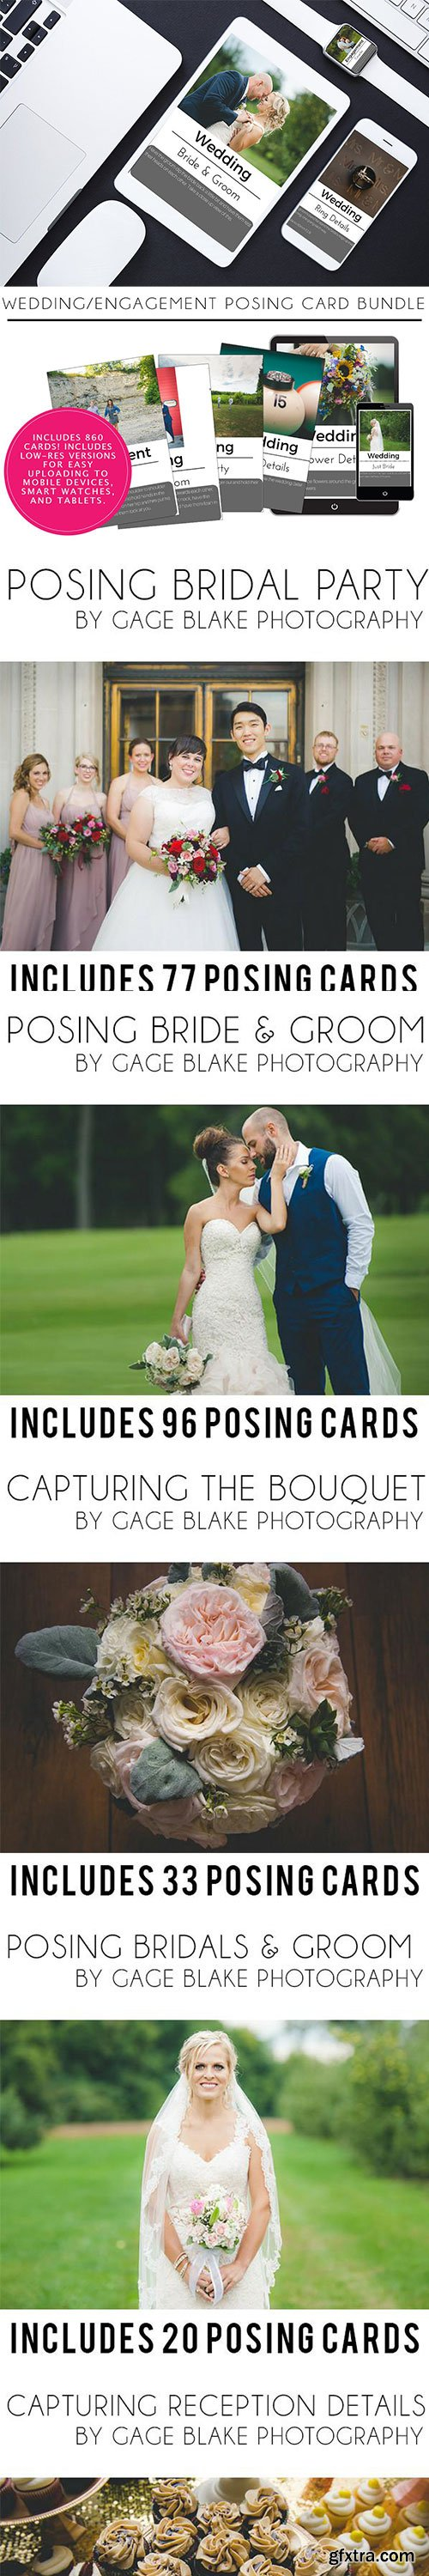 860 Wedding and Engagement Posing Card Bundle by Gage Blake Photography